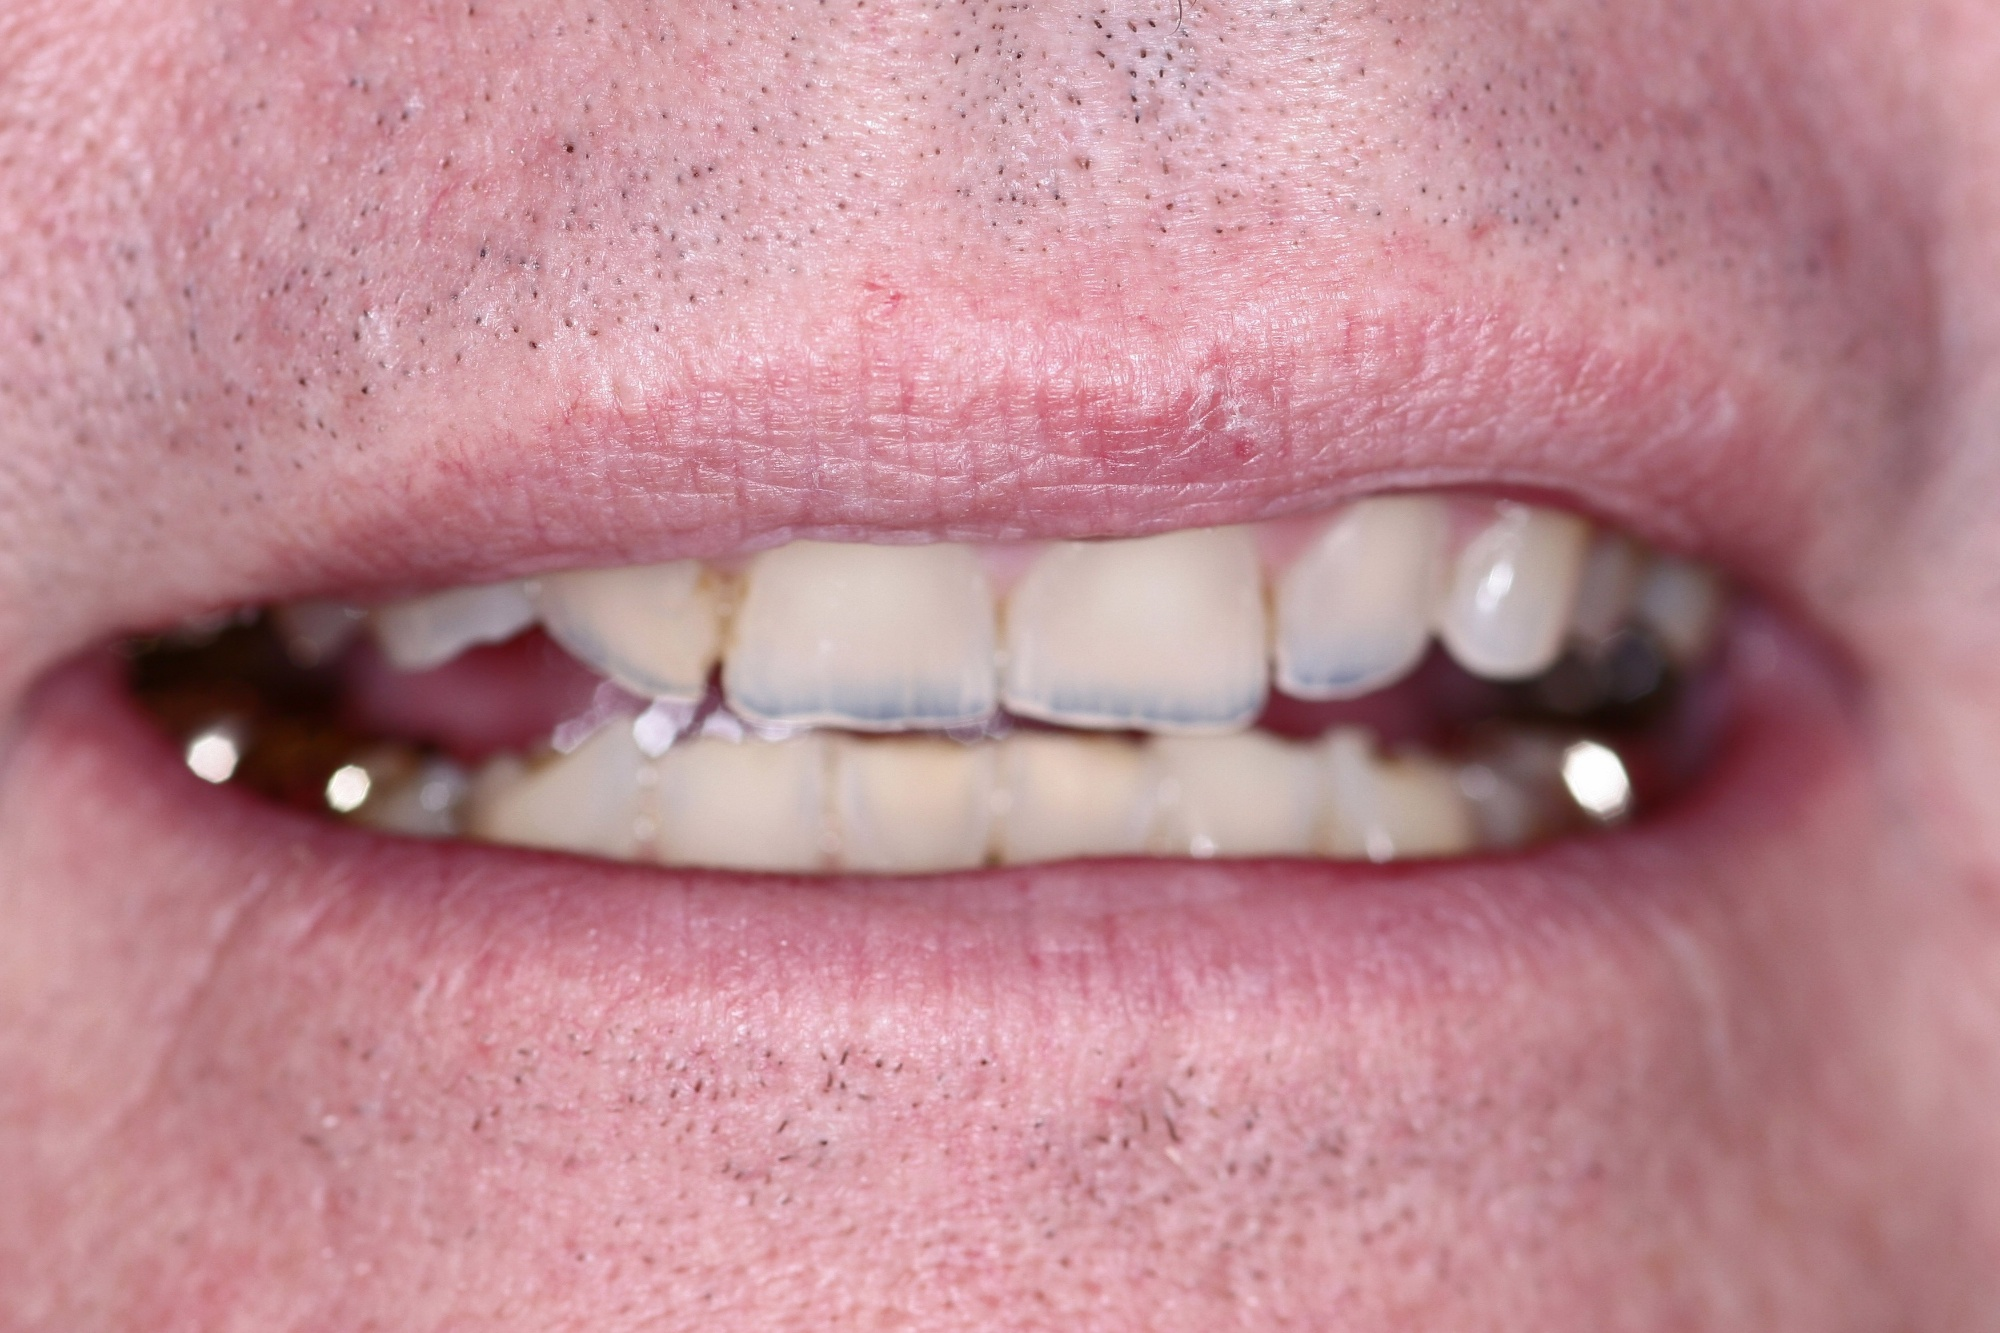 Steve's Smile Before Cosmetic Treatment